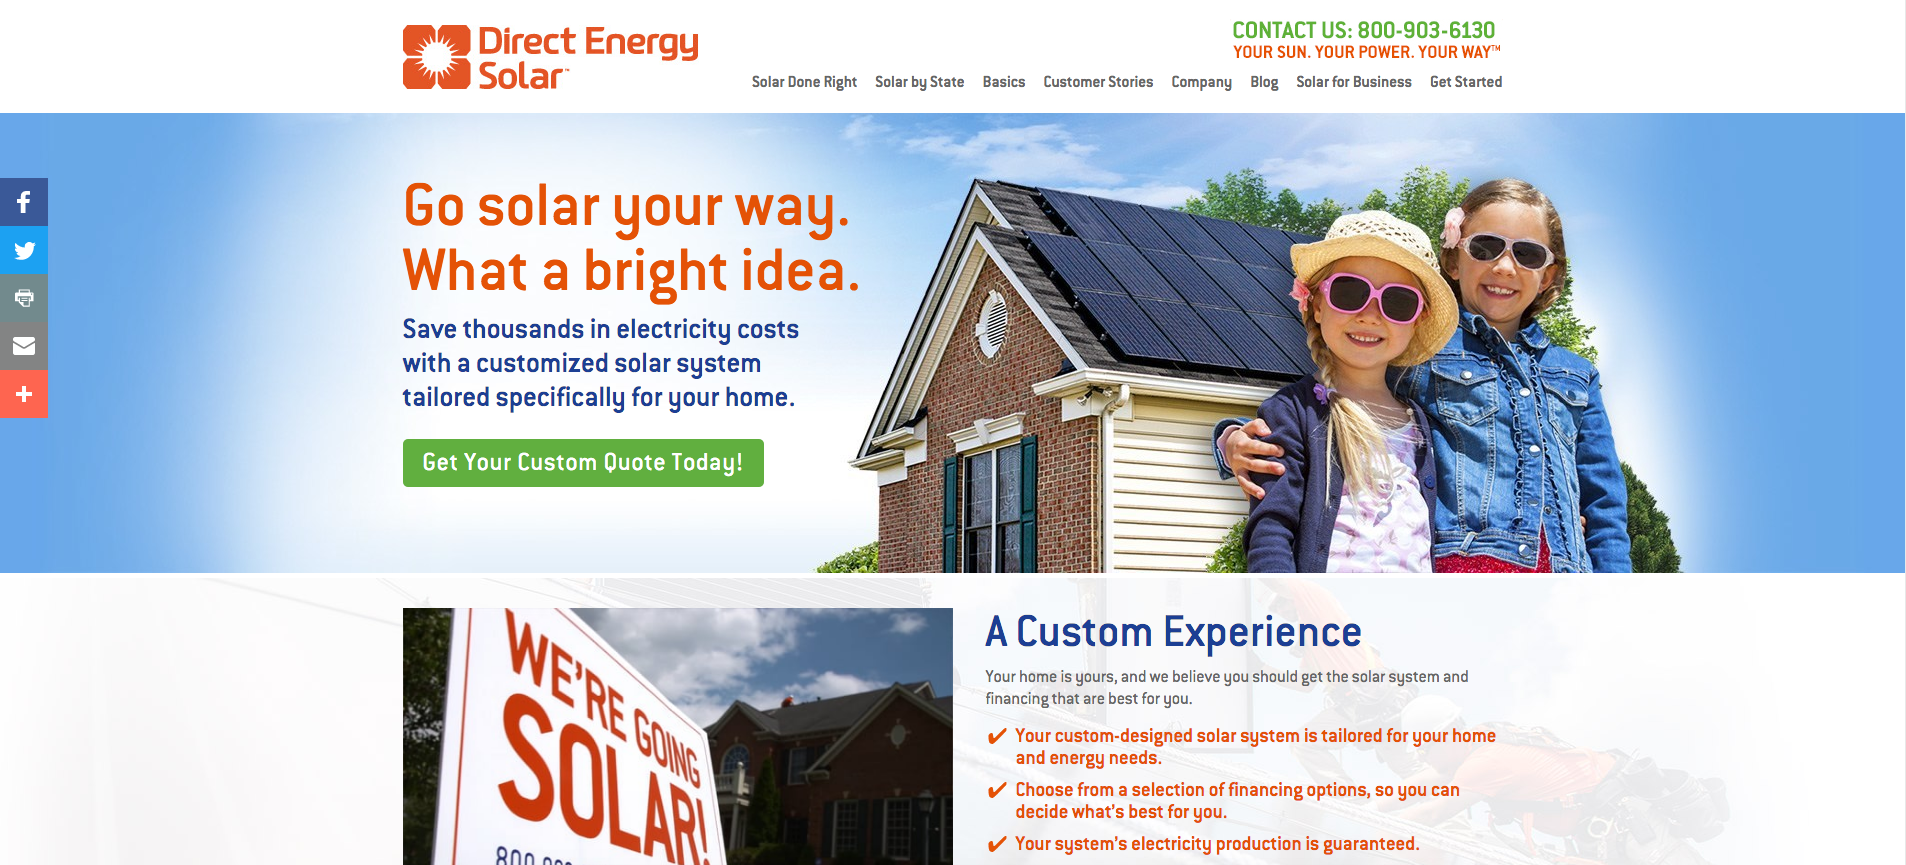 value-proposition-example-astrum-solar.png